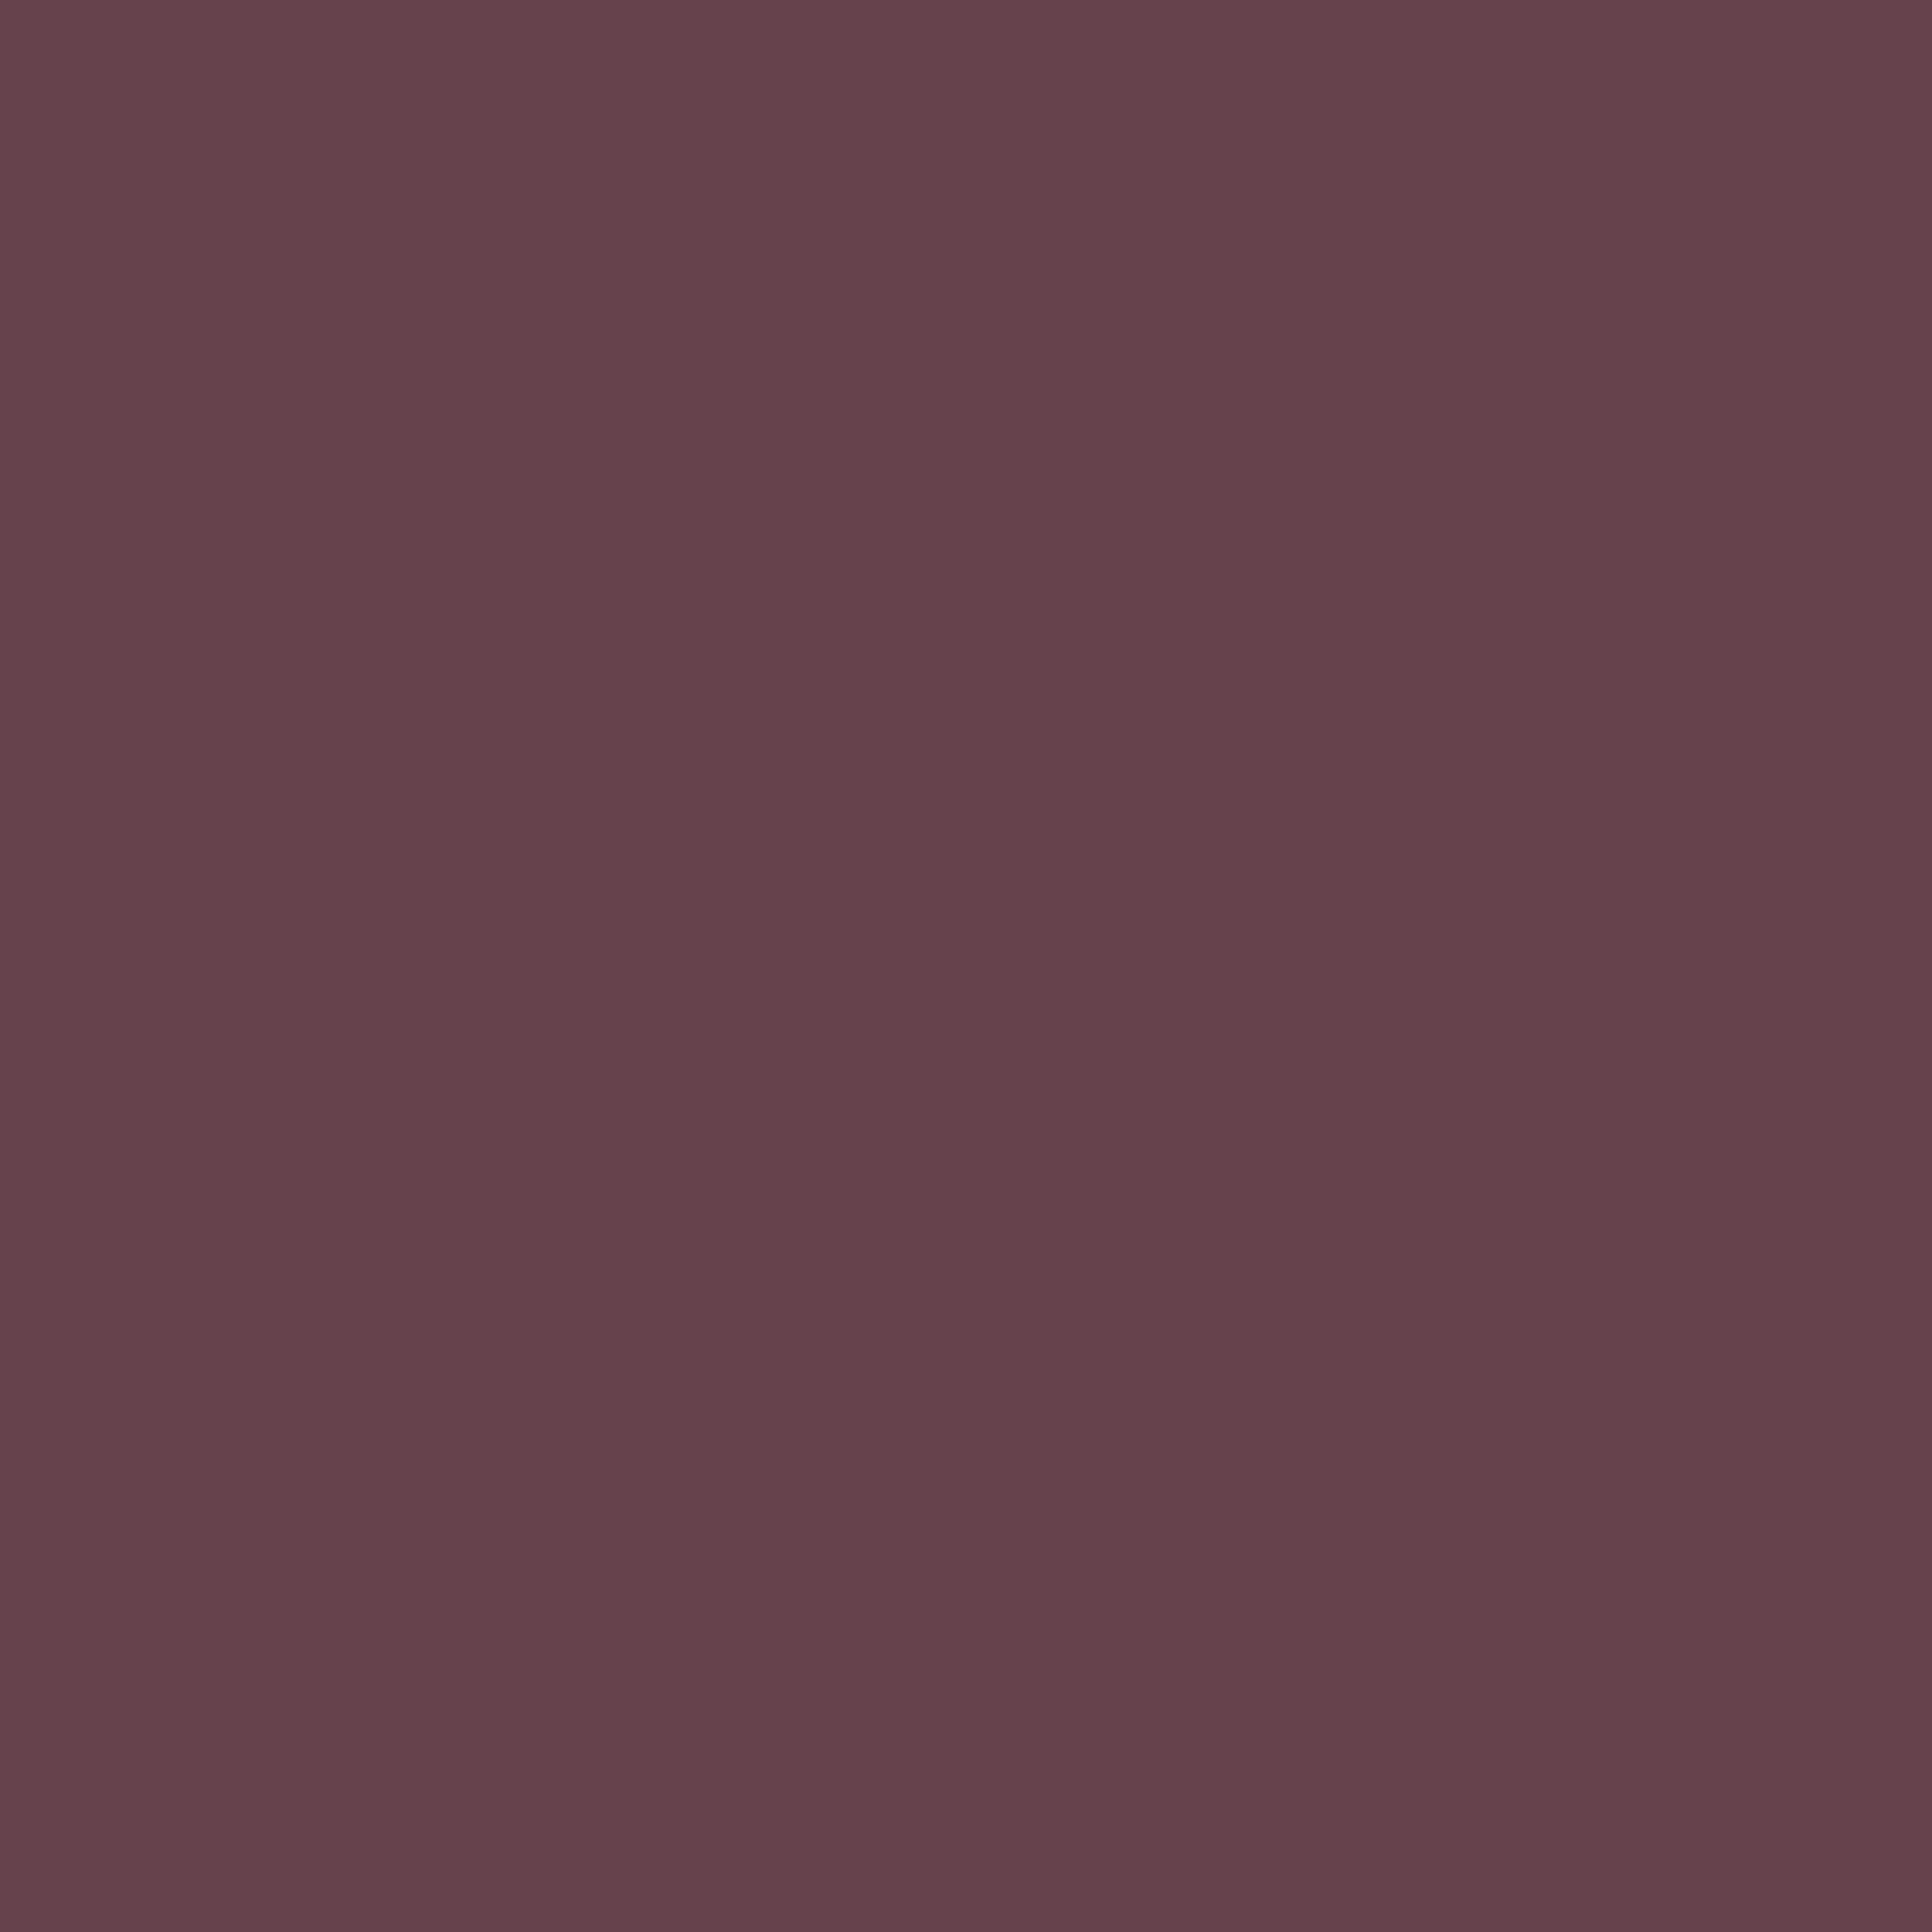 2048x2048 Deep Tuscan Red Solid Color Background